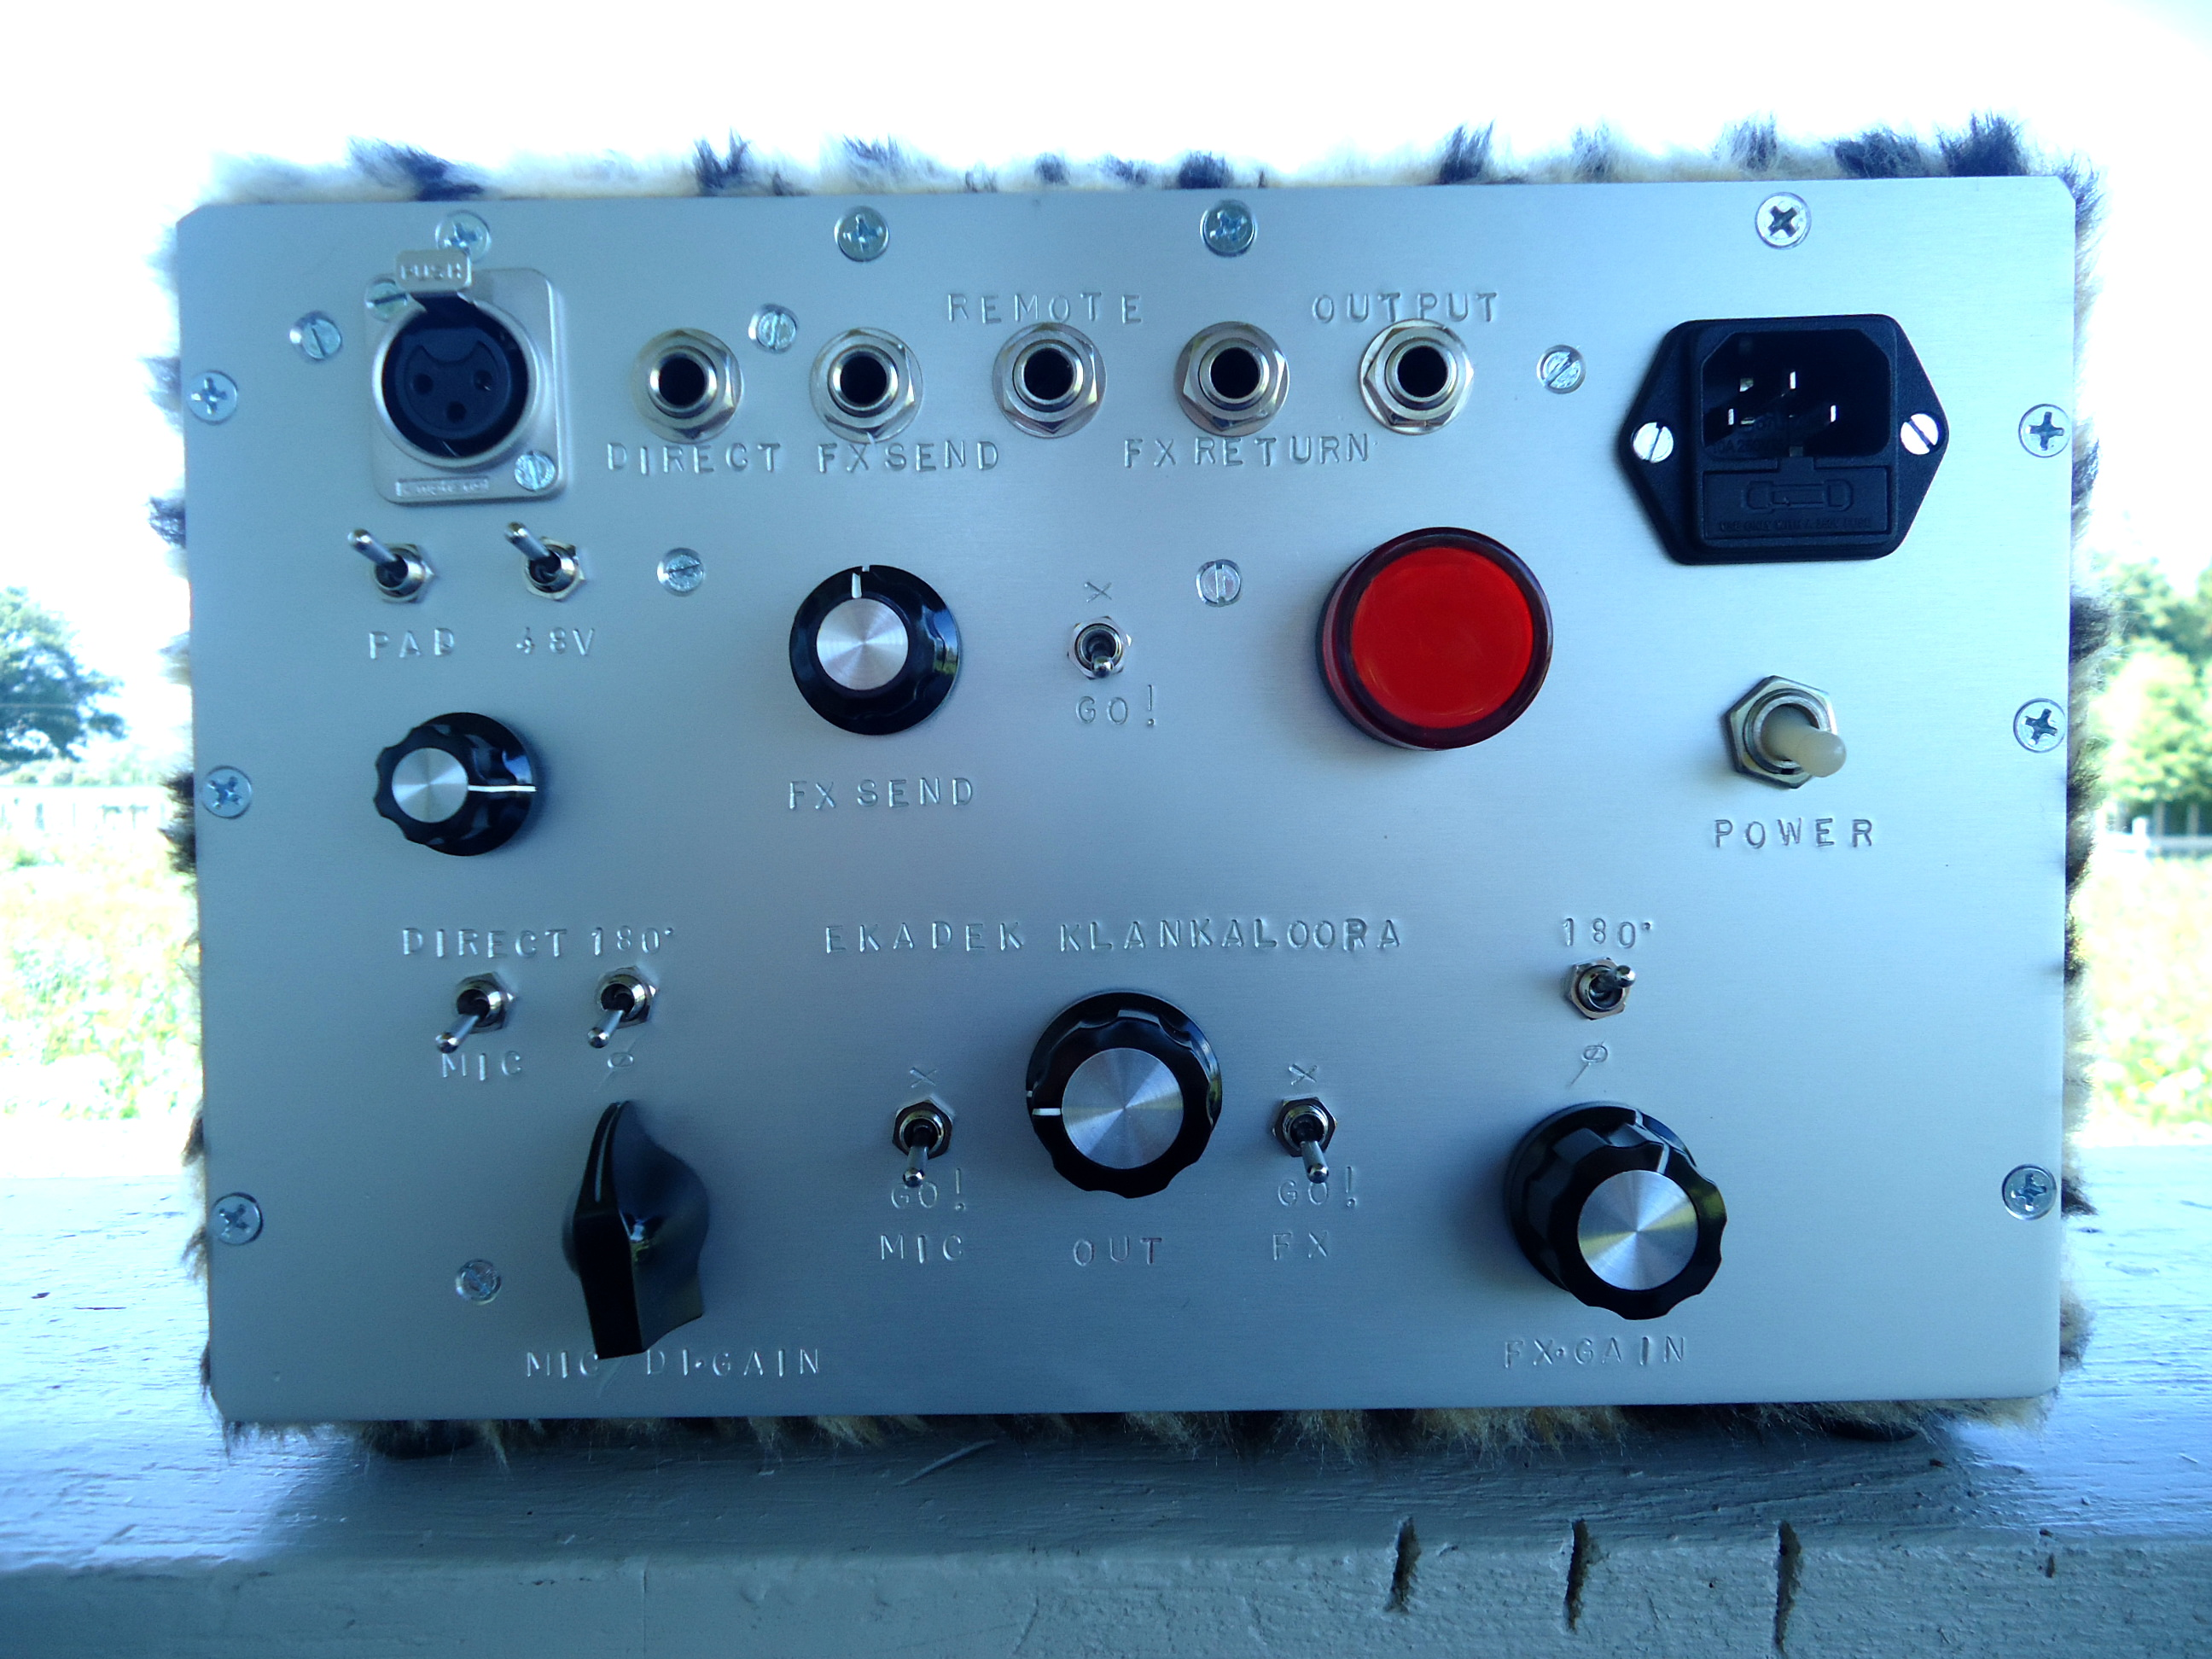 Control Room Monitor Section Ekadek Electronics Sound Single Transistor Audio Mixer Been Working On These New Standard Simple Products The Klankalooper Is A Mic Di Amp With Controlled Fx Send And Return